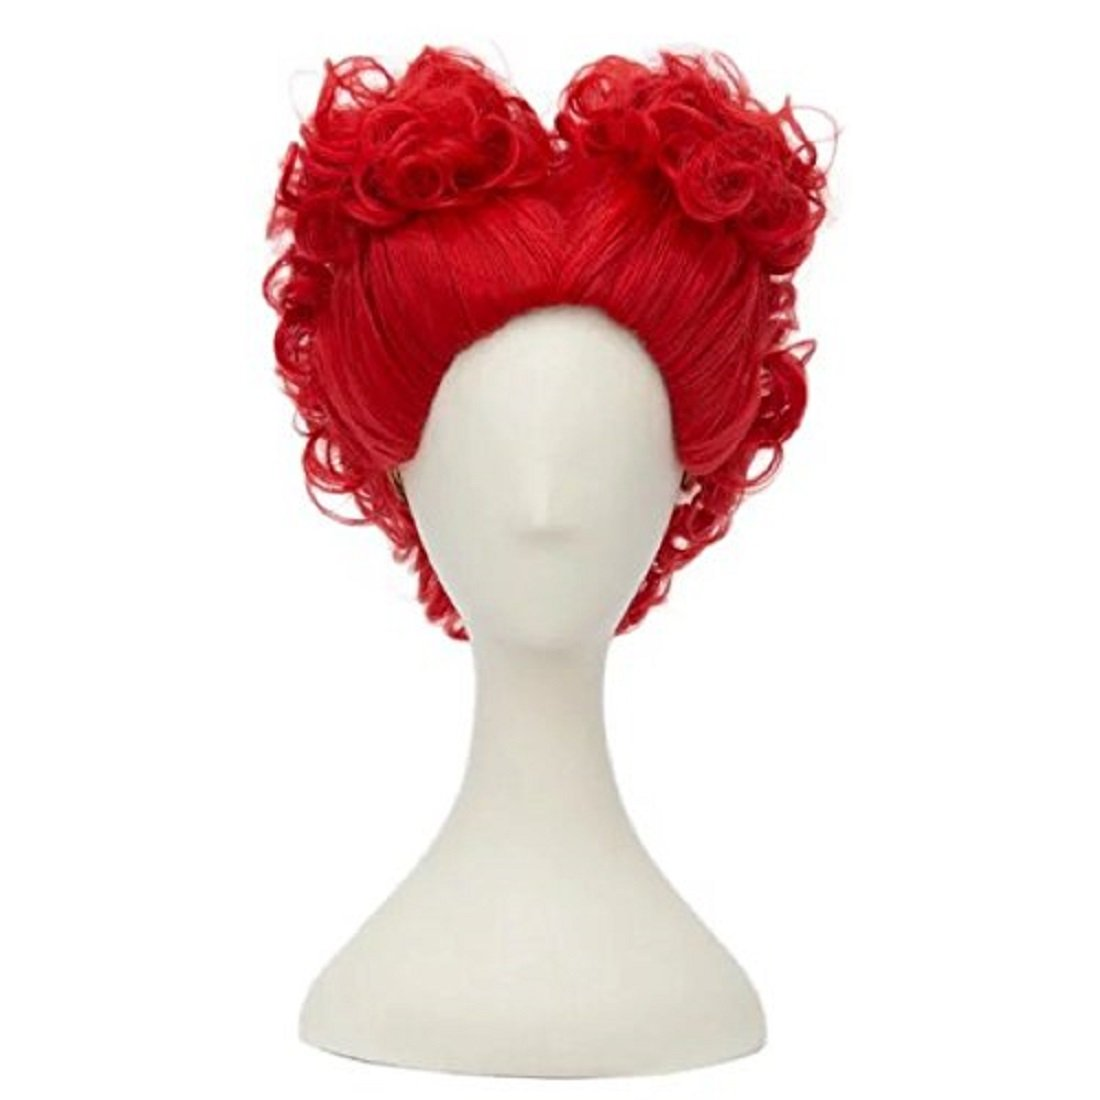 Short Curly Anime Lolita Red Heart Girls Theme Party Cosplay Wig+Cap